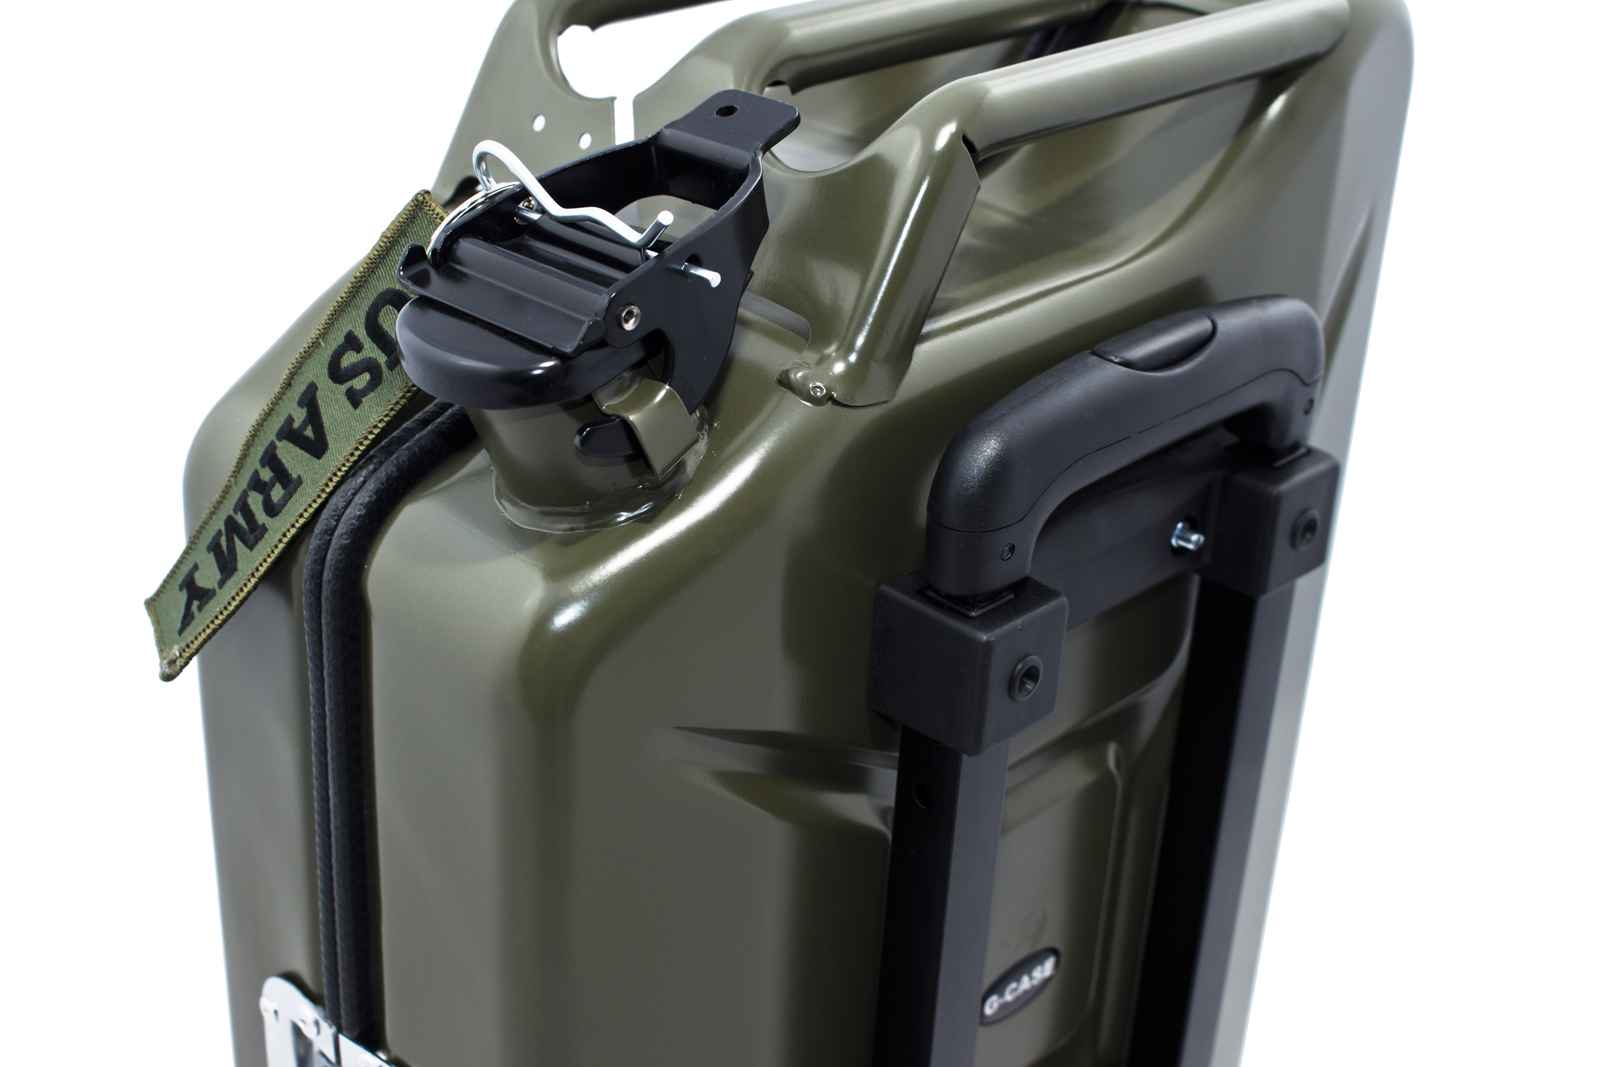 armygreen G-case jerrycan luggage 3